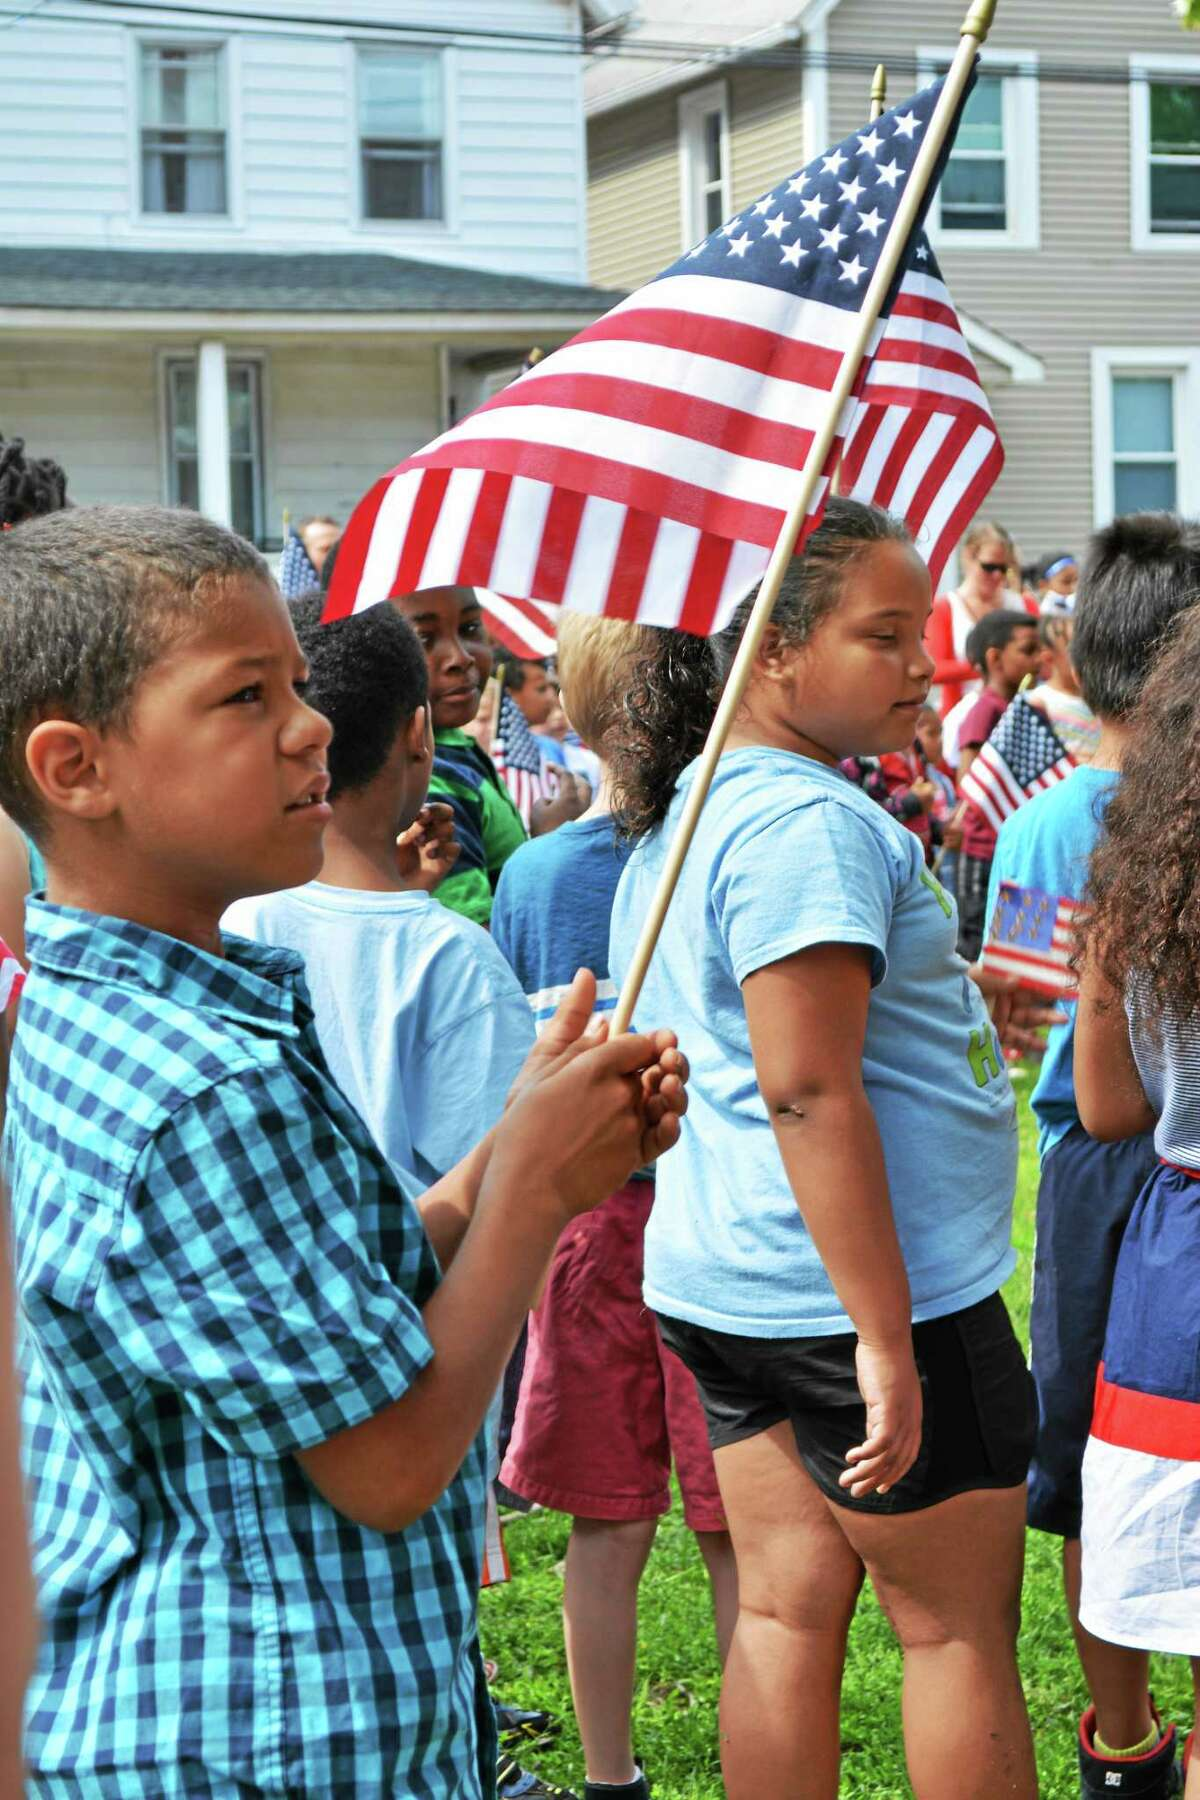 Brian Zahn - The Middletown Press Macdonough school staff, parents, teachers and community members pay tribute to the American Flag on June 12. It's a colorful and musical tradition at Middletown's North End elementary.